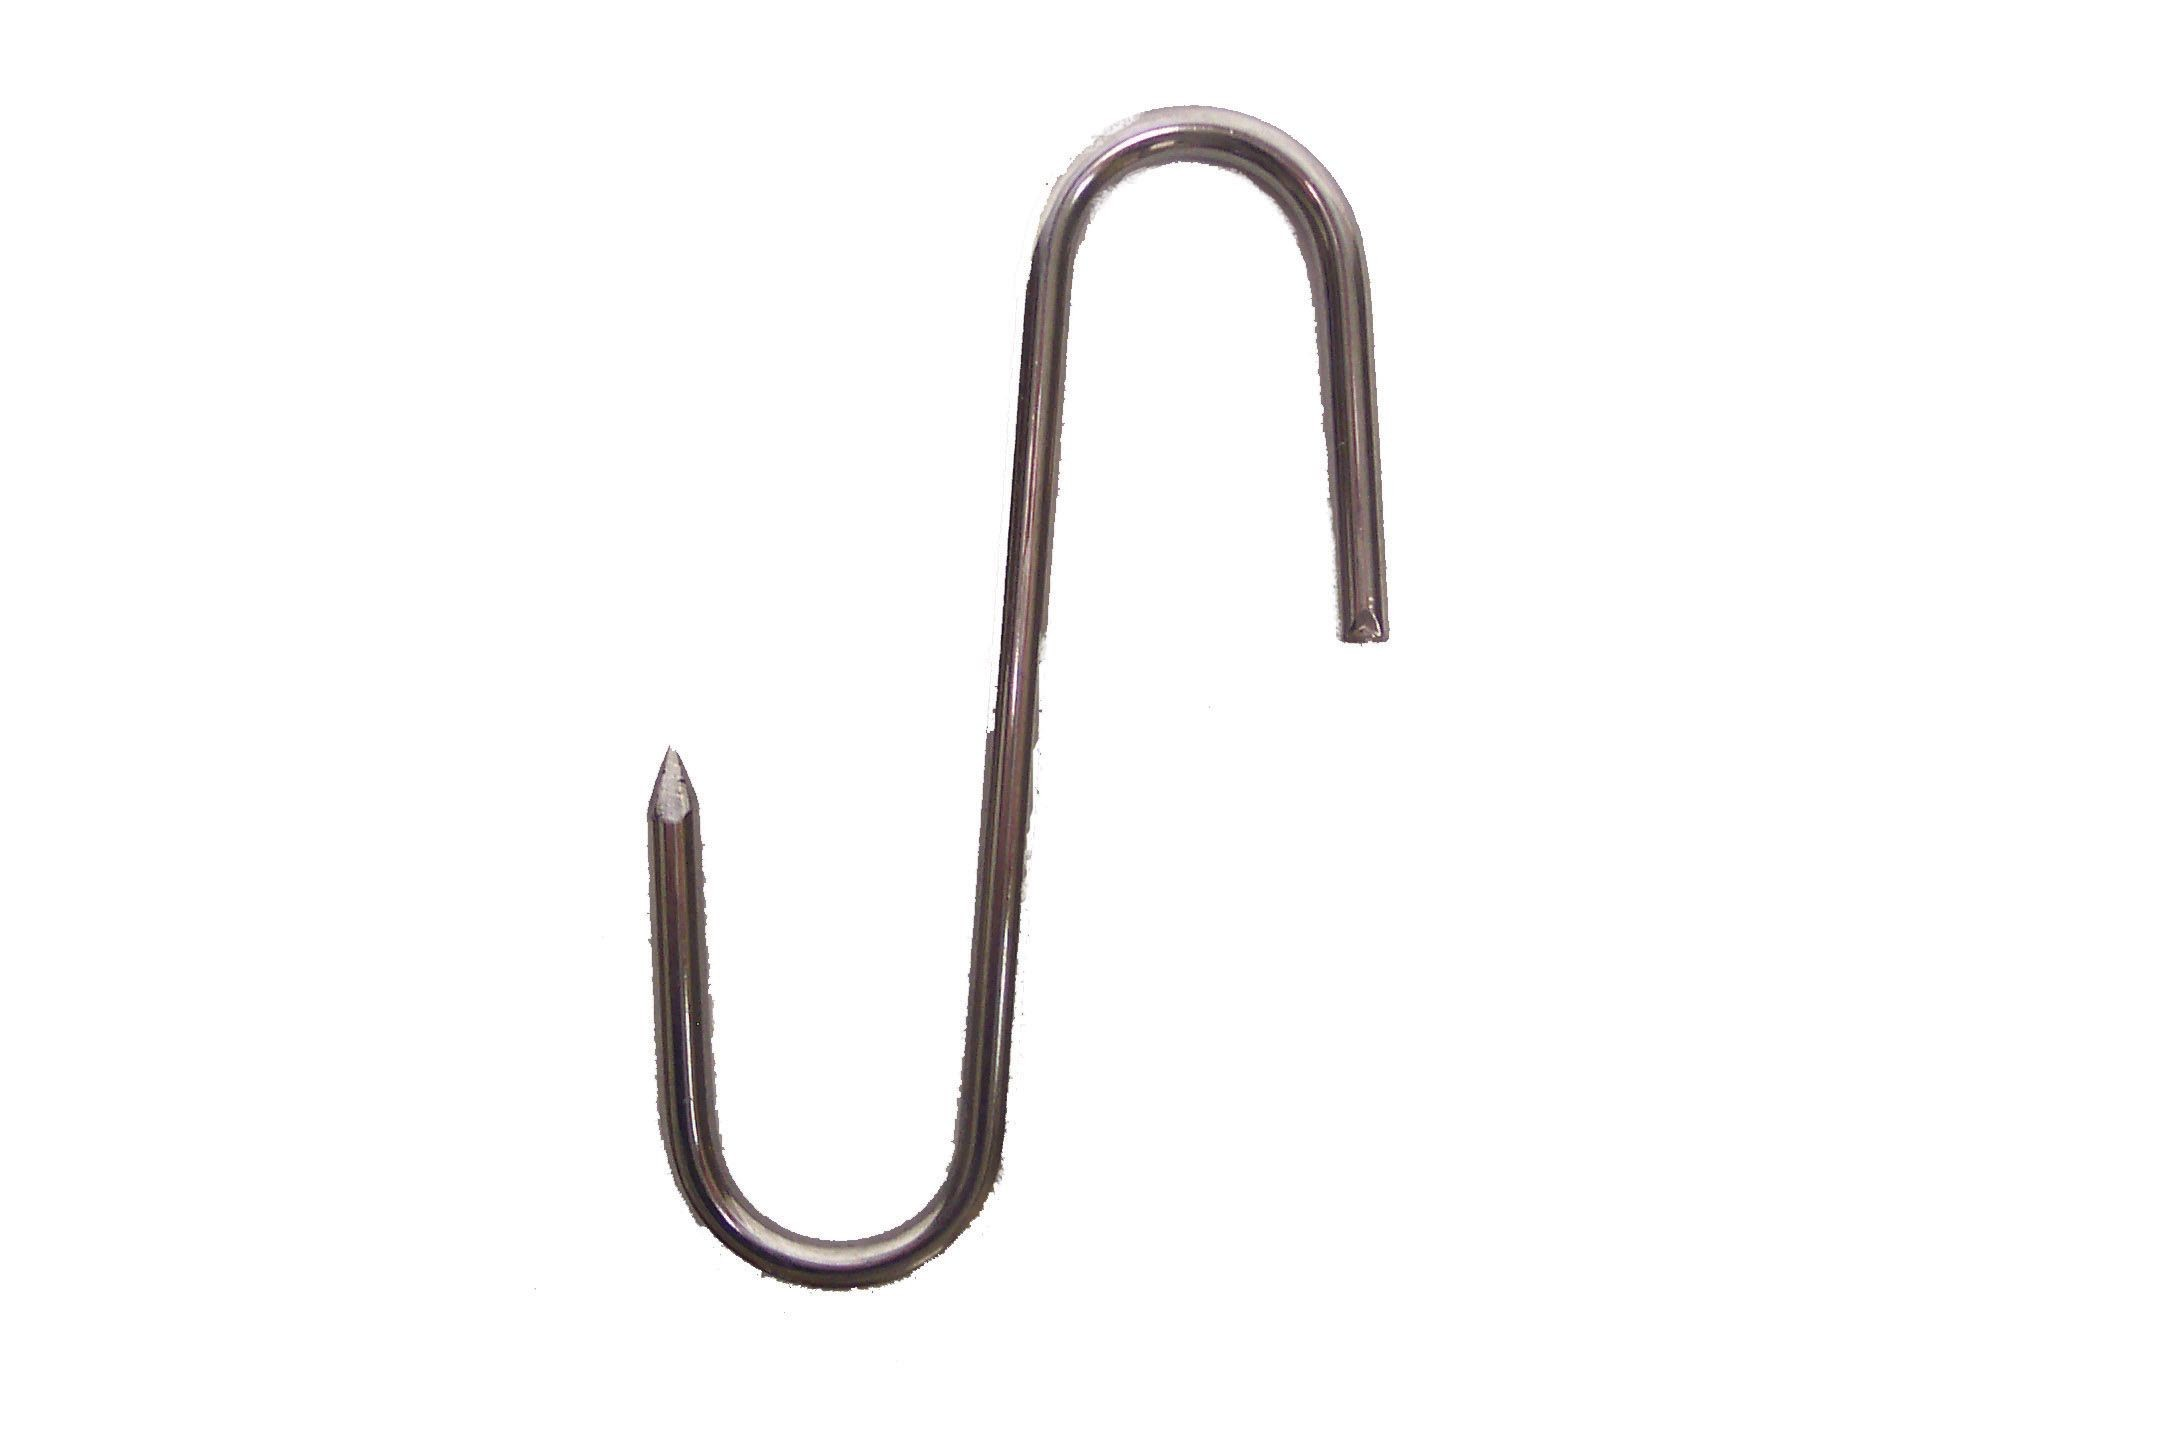 Johnson-Rose 9108 Stainless Steel Meat Hook 3-1/8""